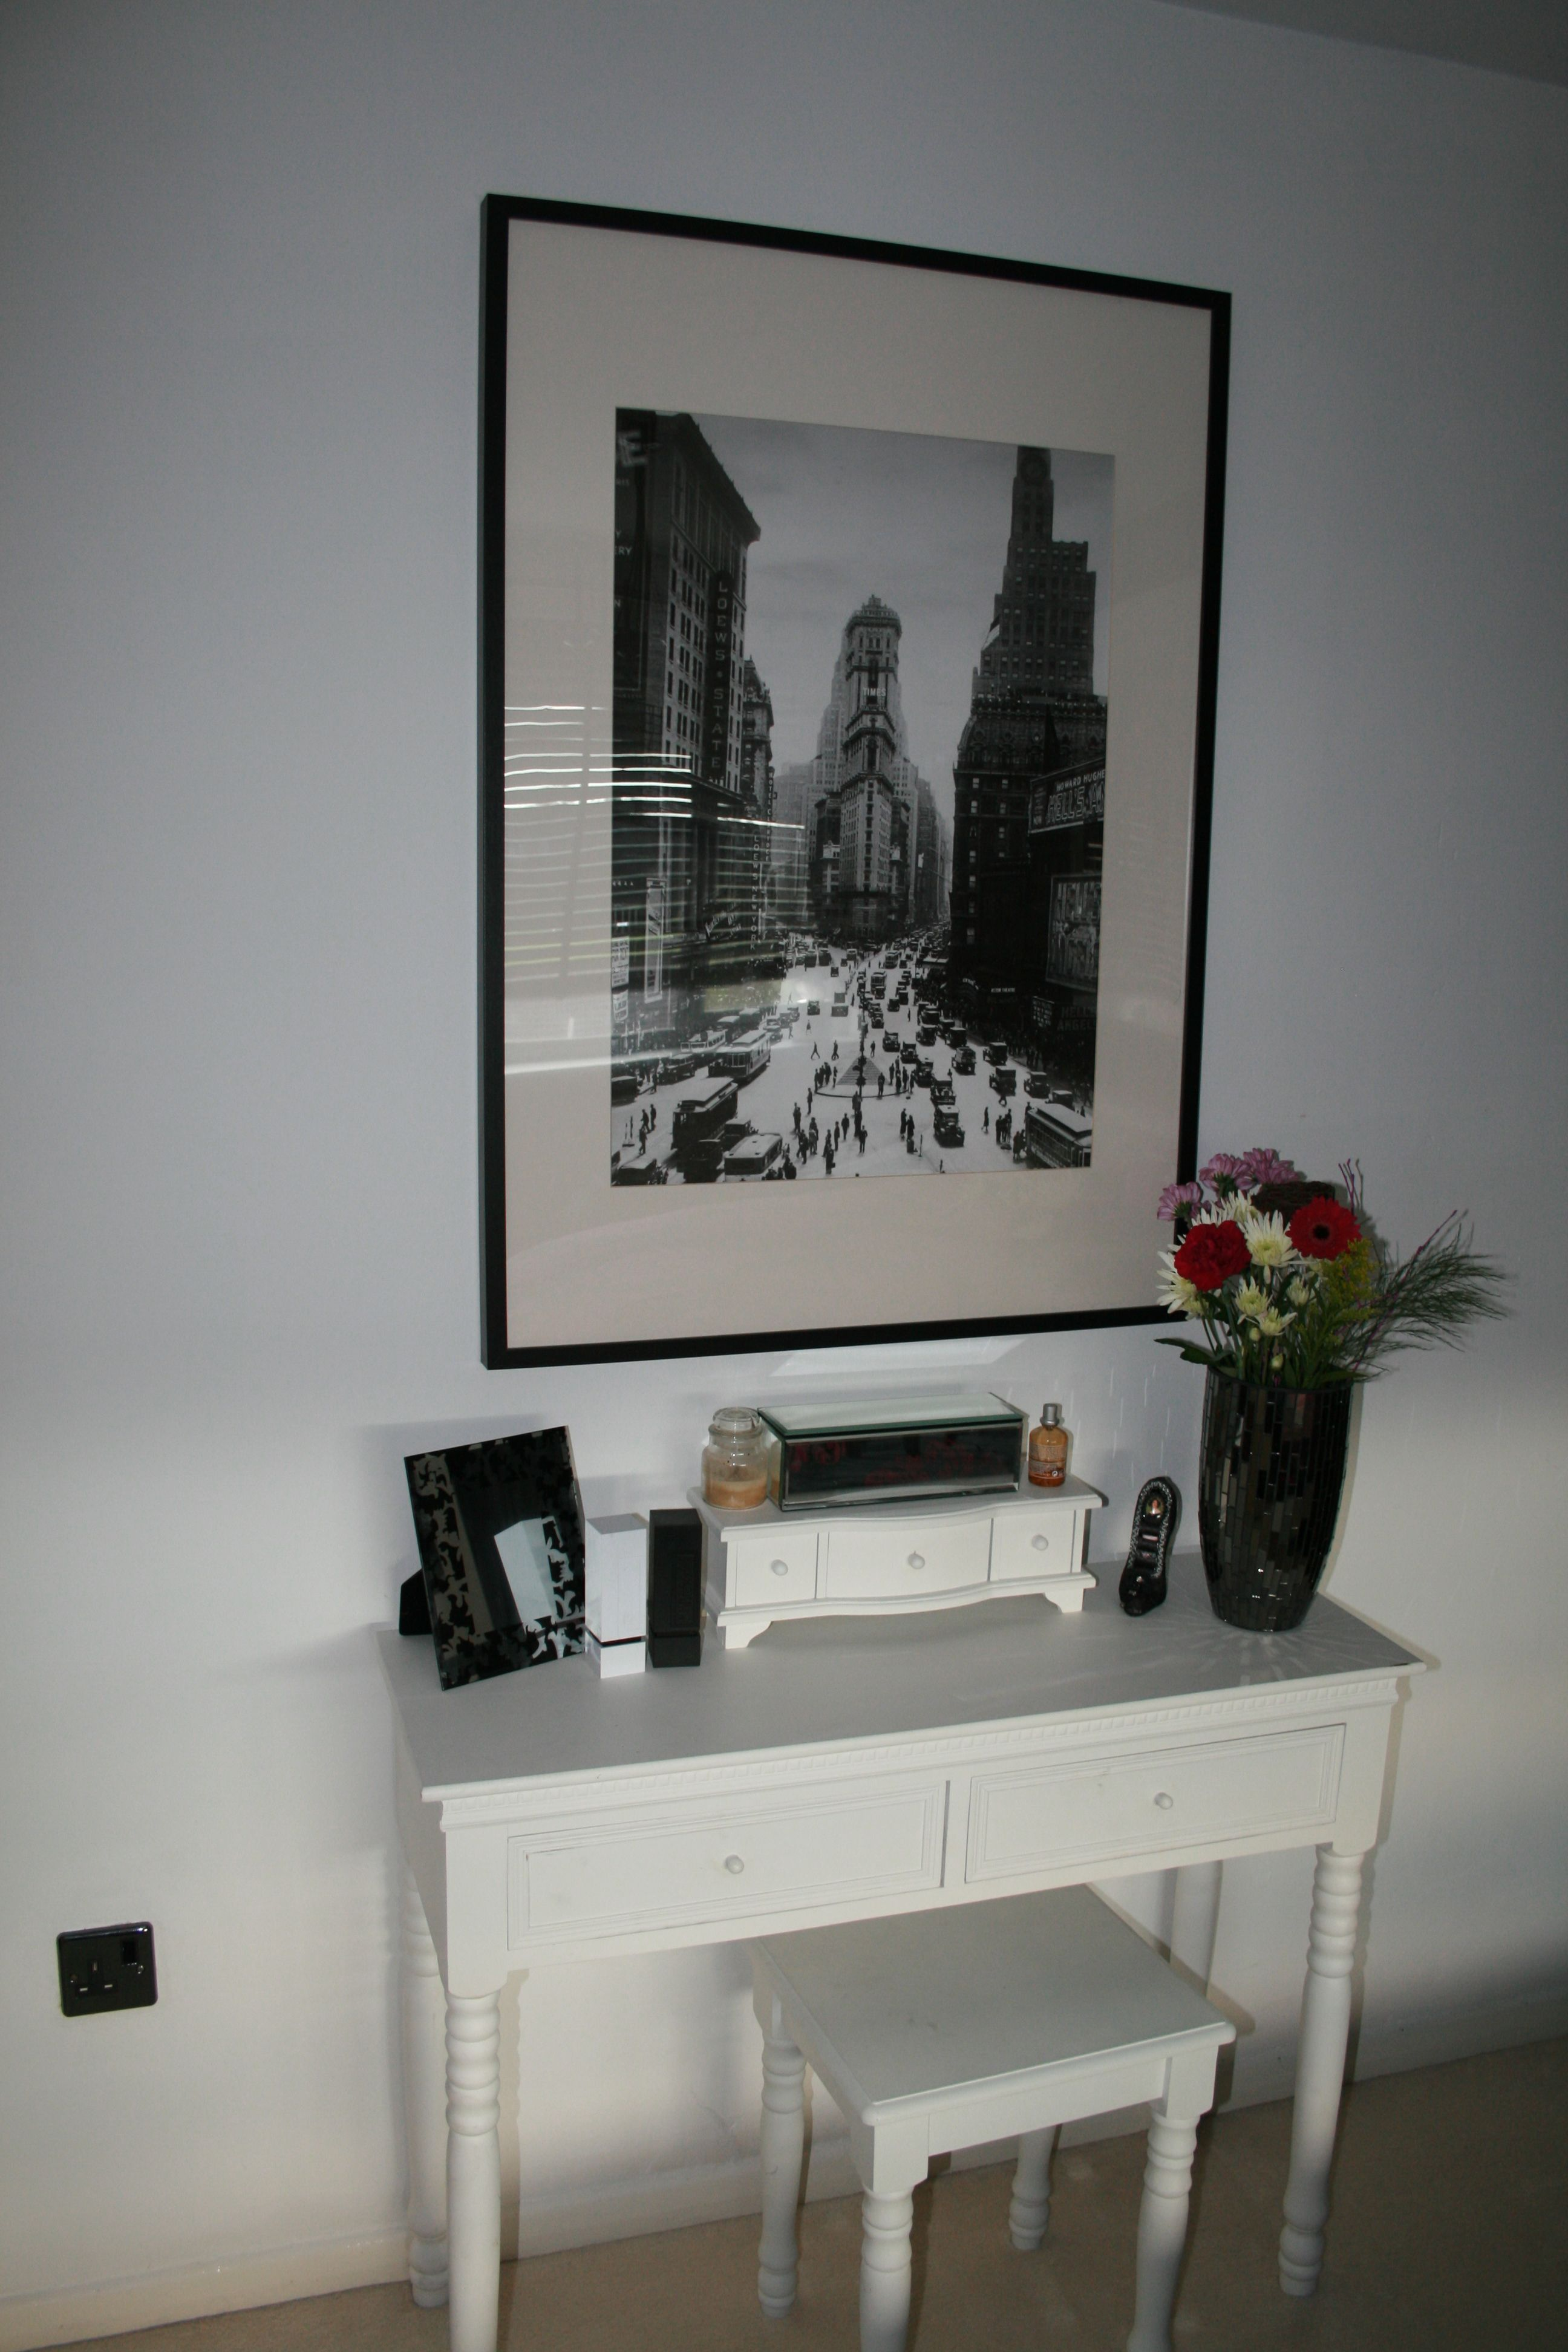 Small Bedroom Stool Bedroom Small White Console Table Dresser Against White Wall